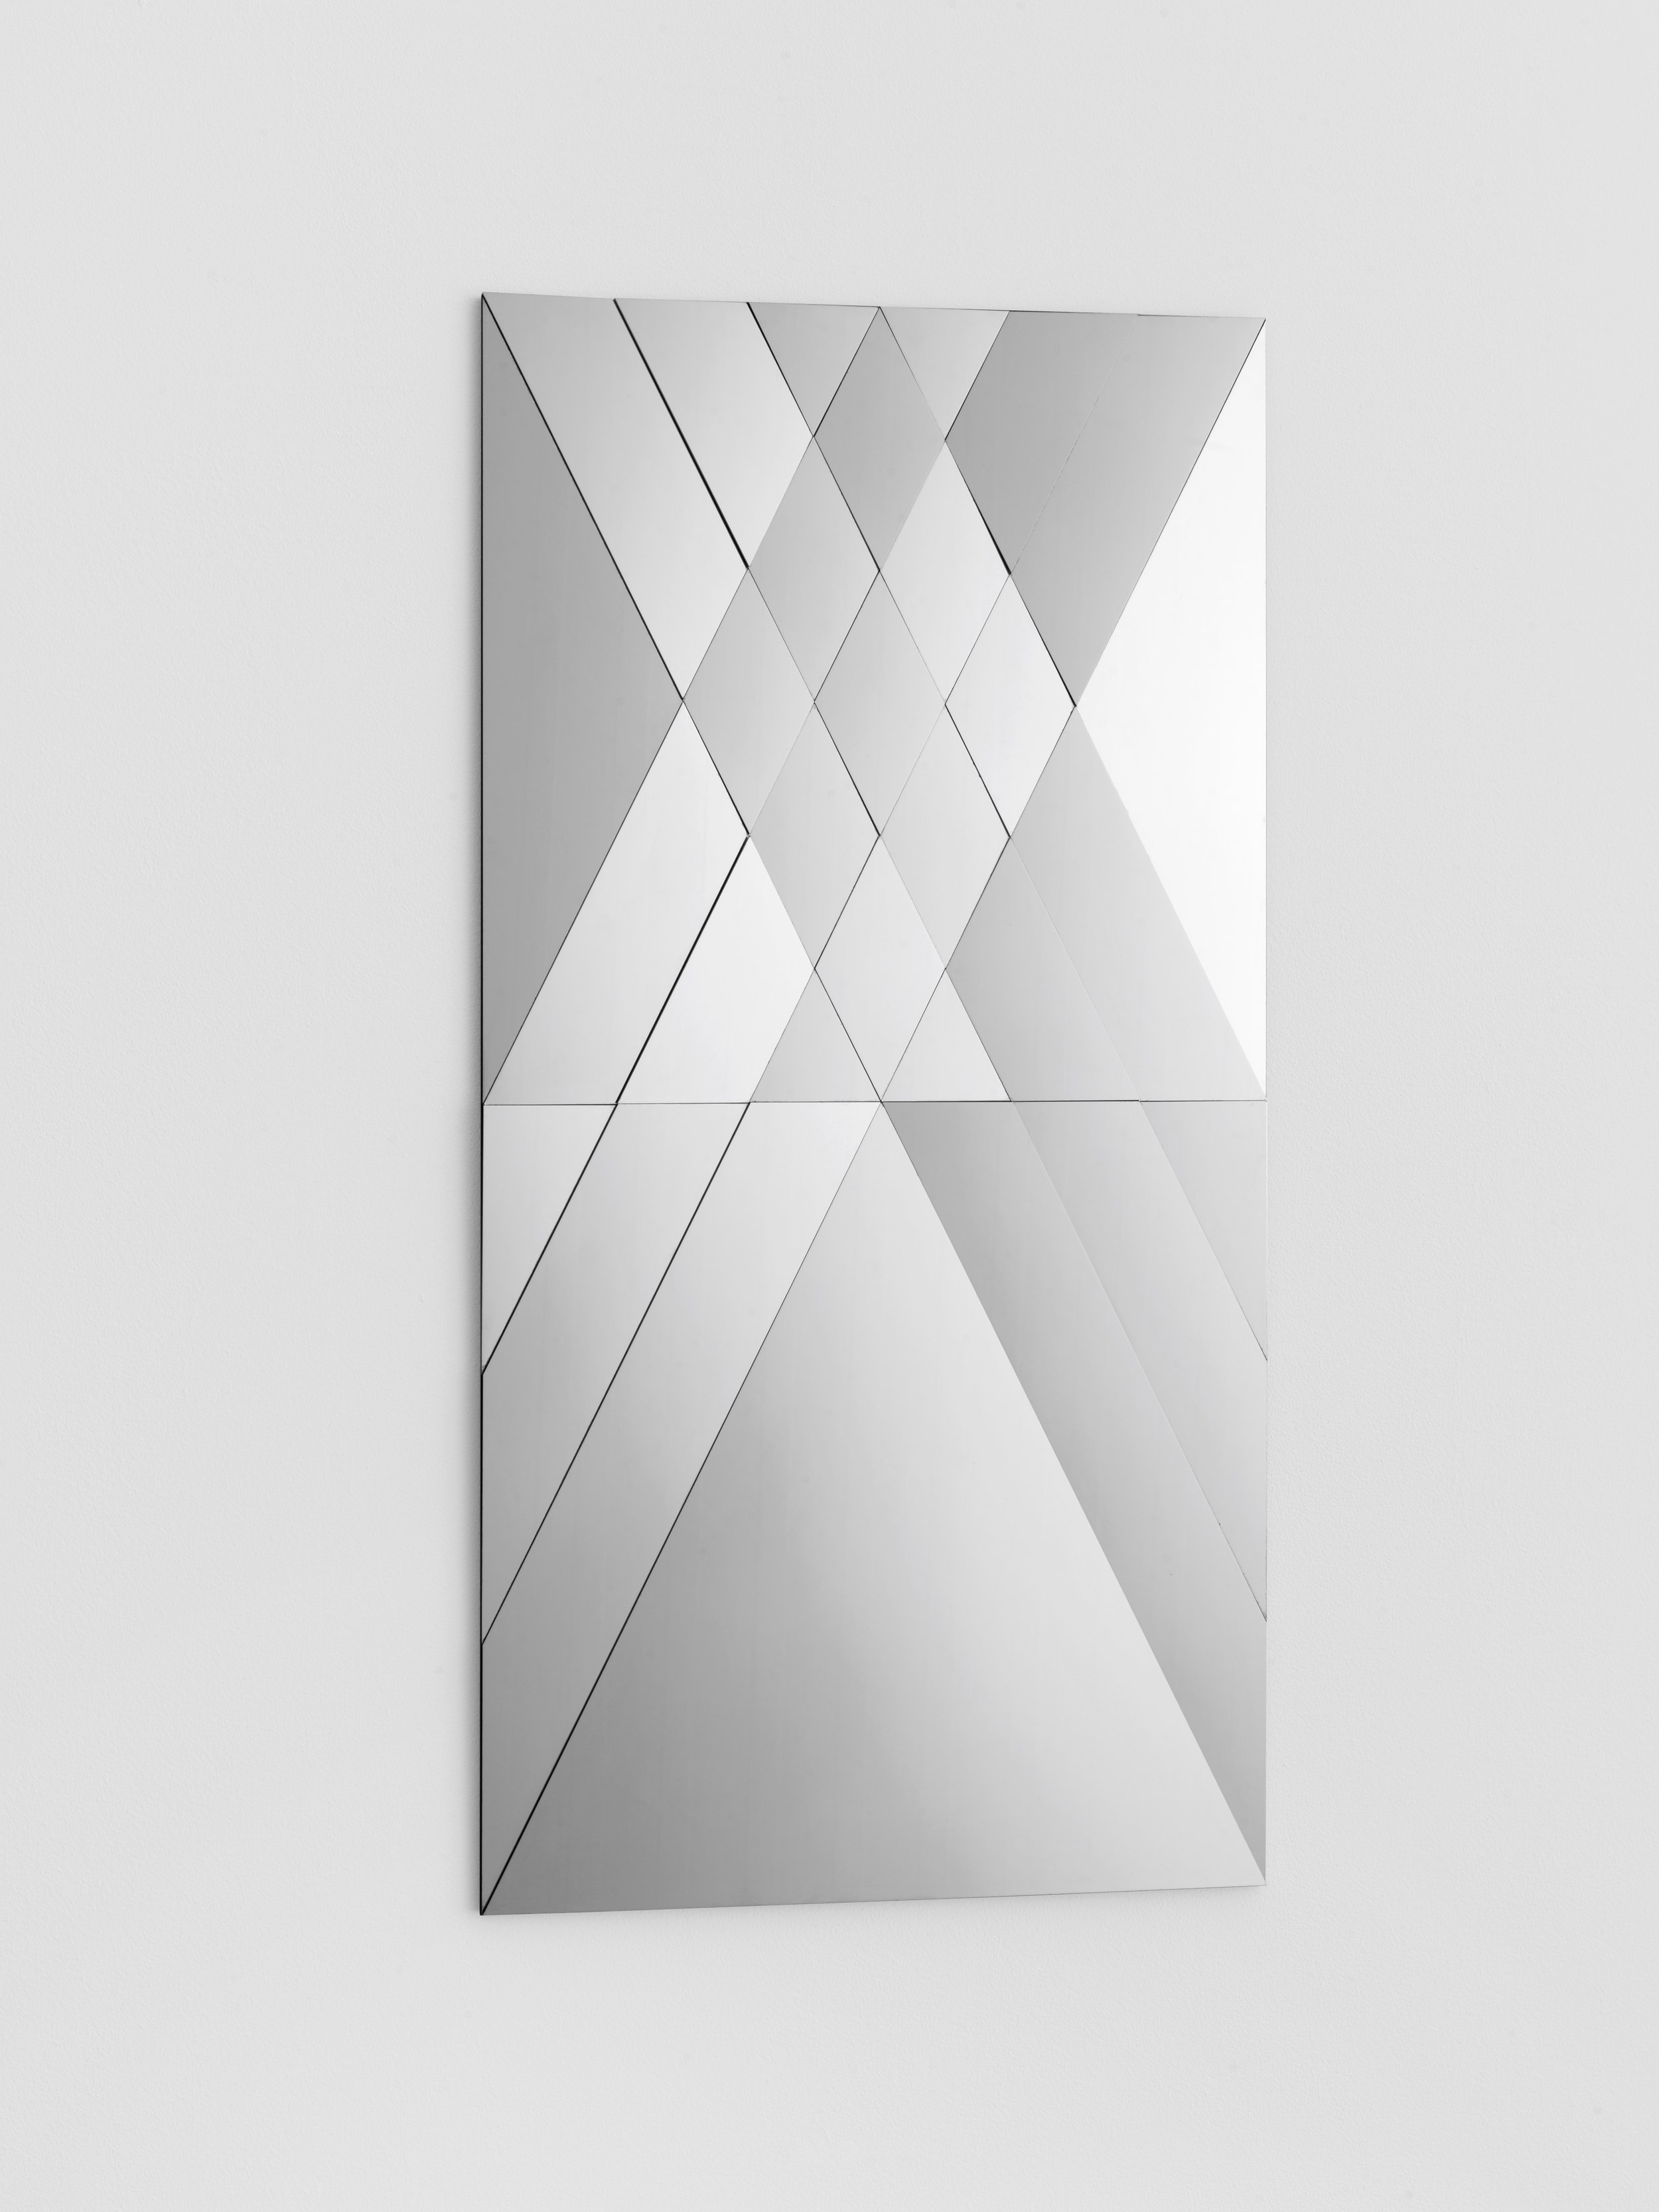 Claudia Wieser  Untitled,  2015  polished stainless steel, 40 x 80 cm